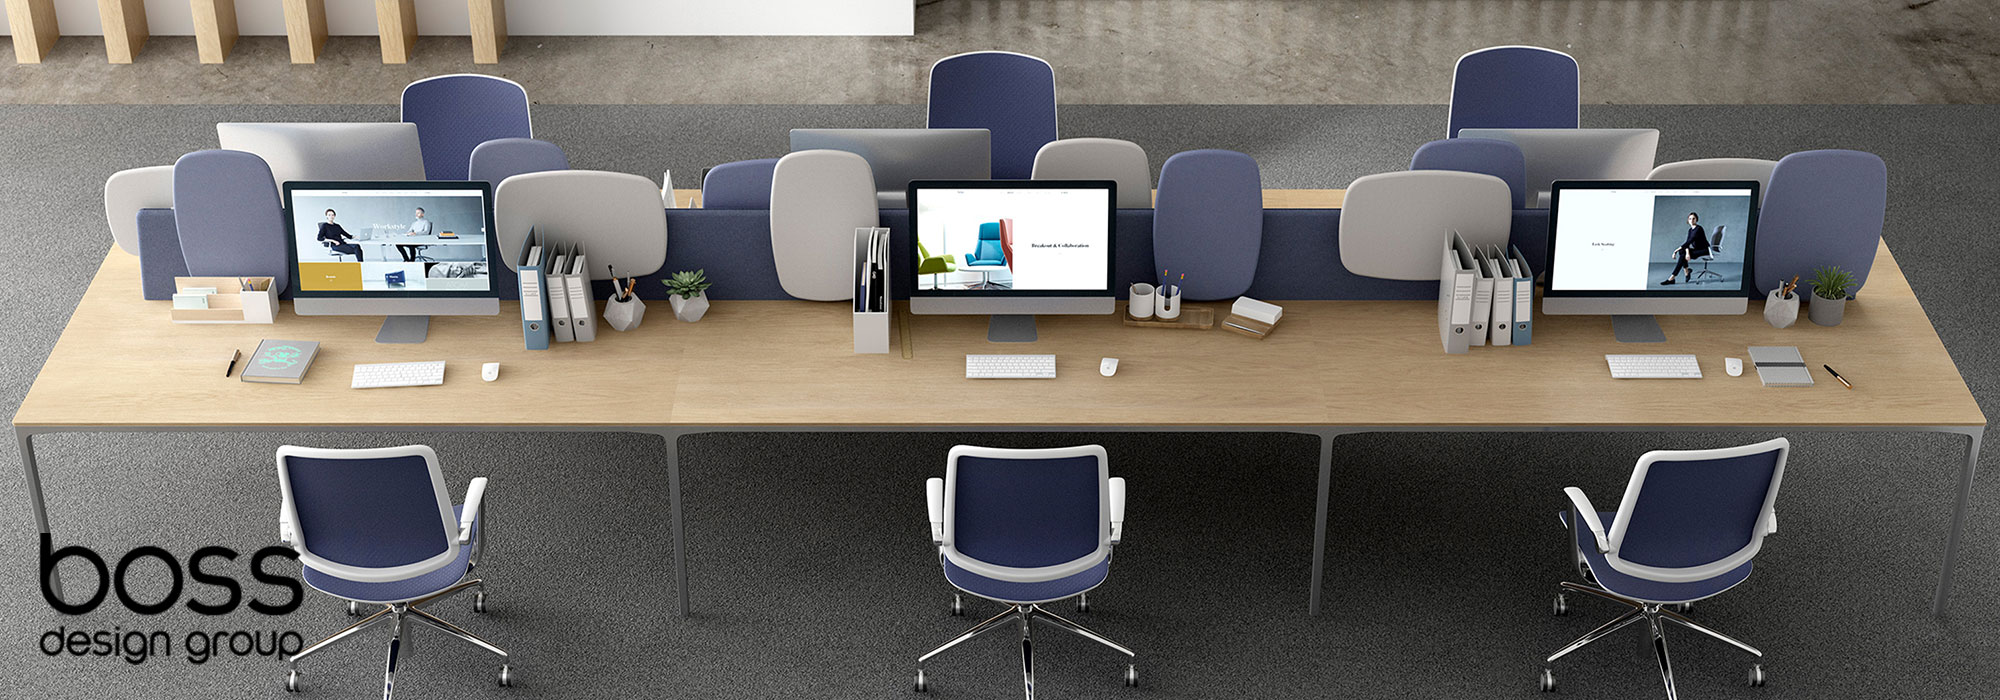 Boss Design Atom Desking & Trinetic Task Chairs